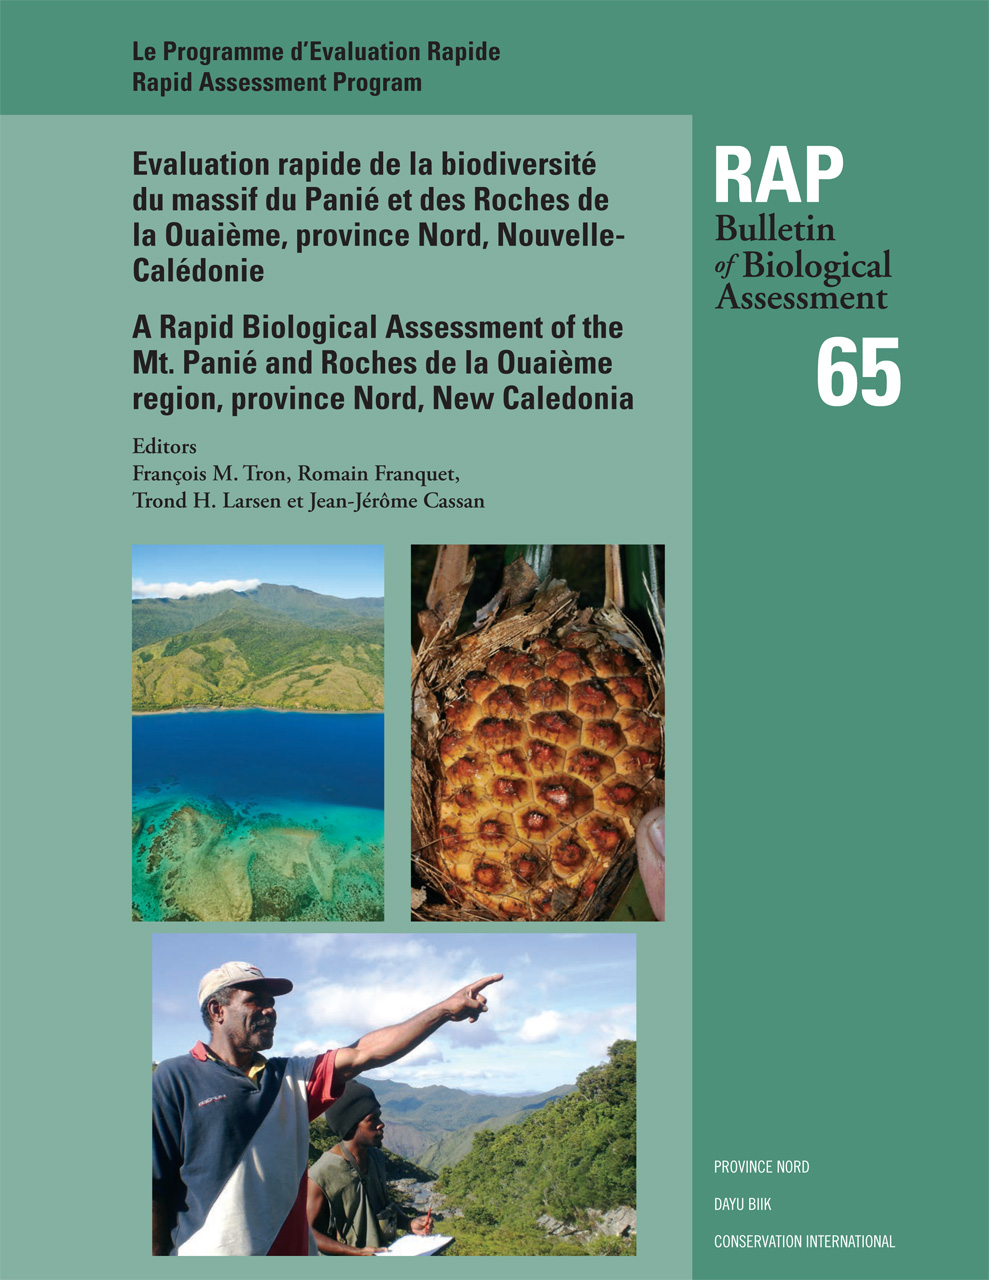 A Rapid Biological Assessment of the Mont Panié Range and Roches de la Ouaième, North Province, New Caledonia